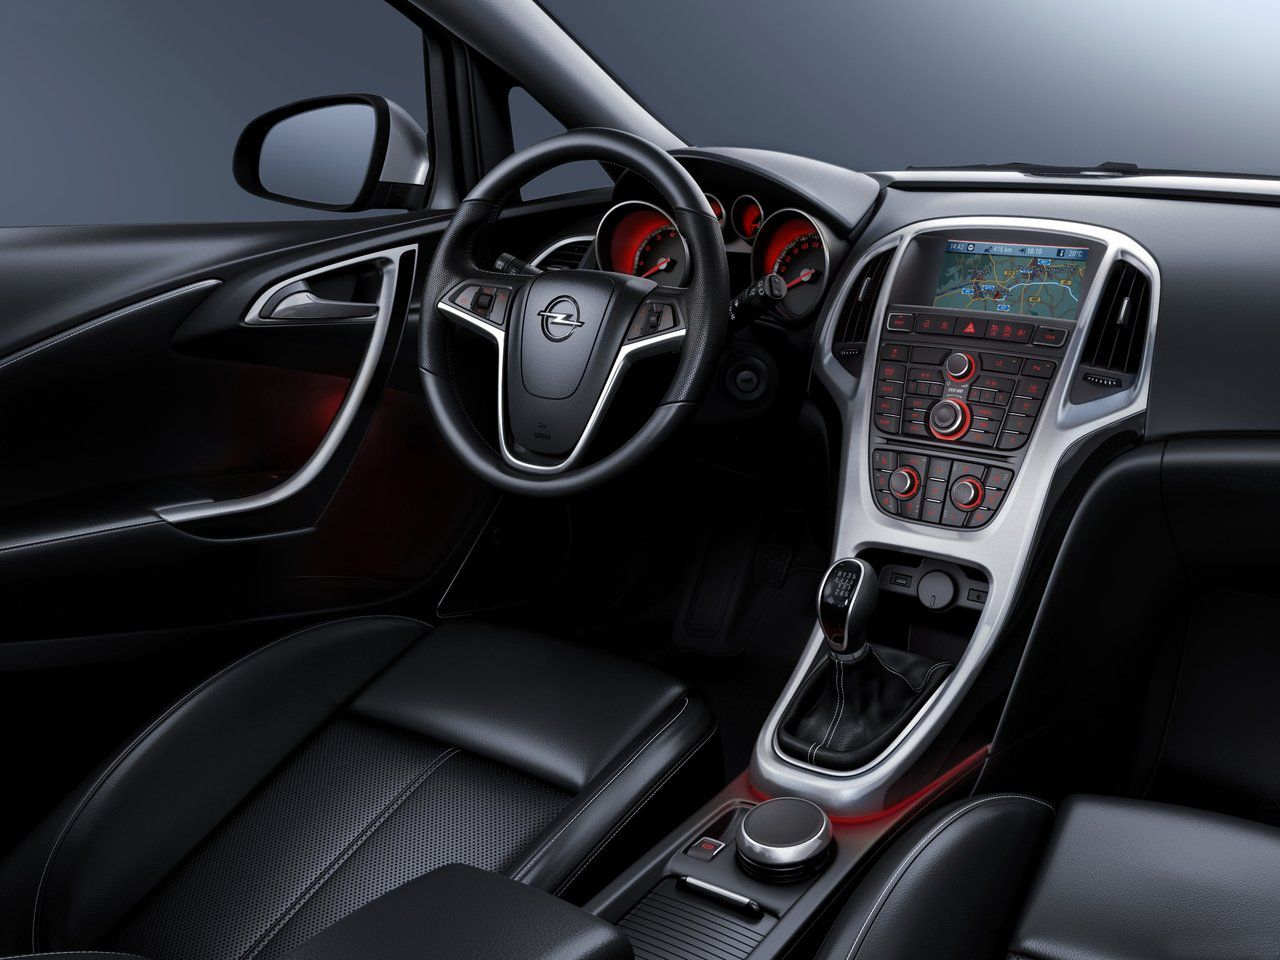 Opel Astra interior | Opel Astra | Pinterest | Cars, Opel vectra and ...